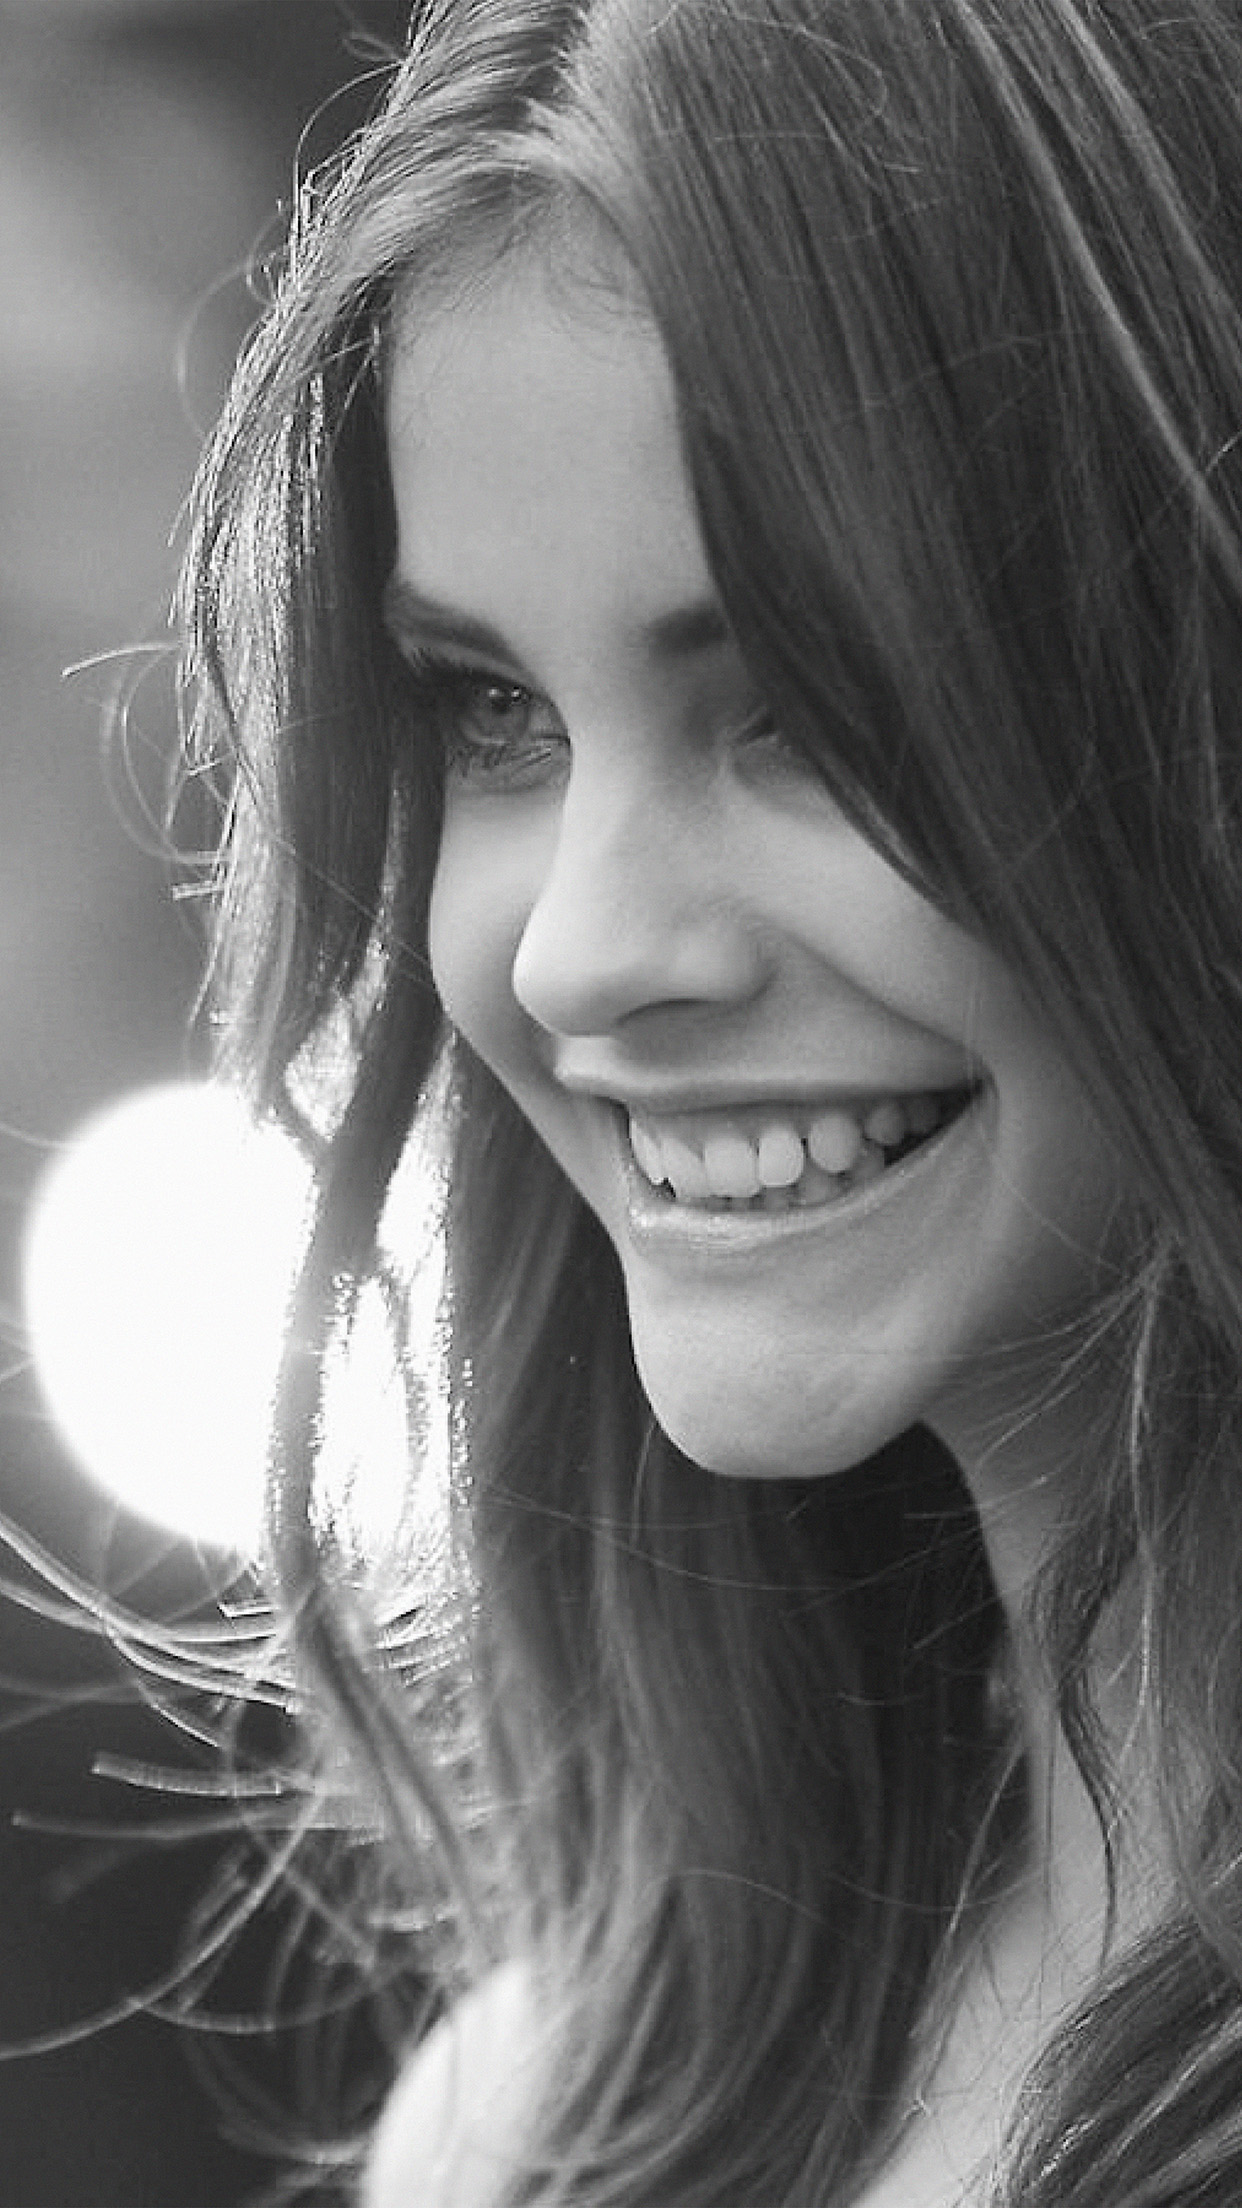 Cute Small Girl Hd Wallpaper Hn39 Barbara Palvin Dark Bw Girl Beauty Model Wallpaper